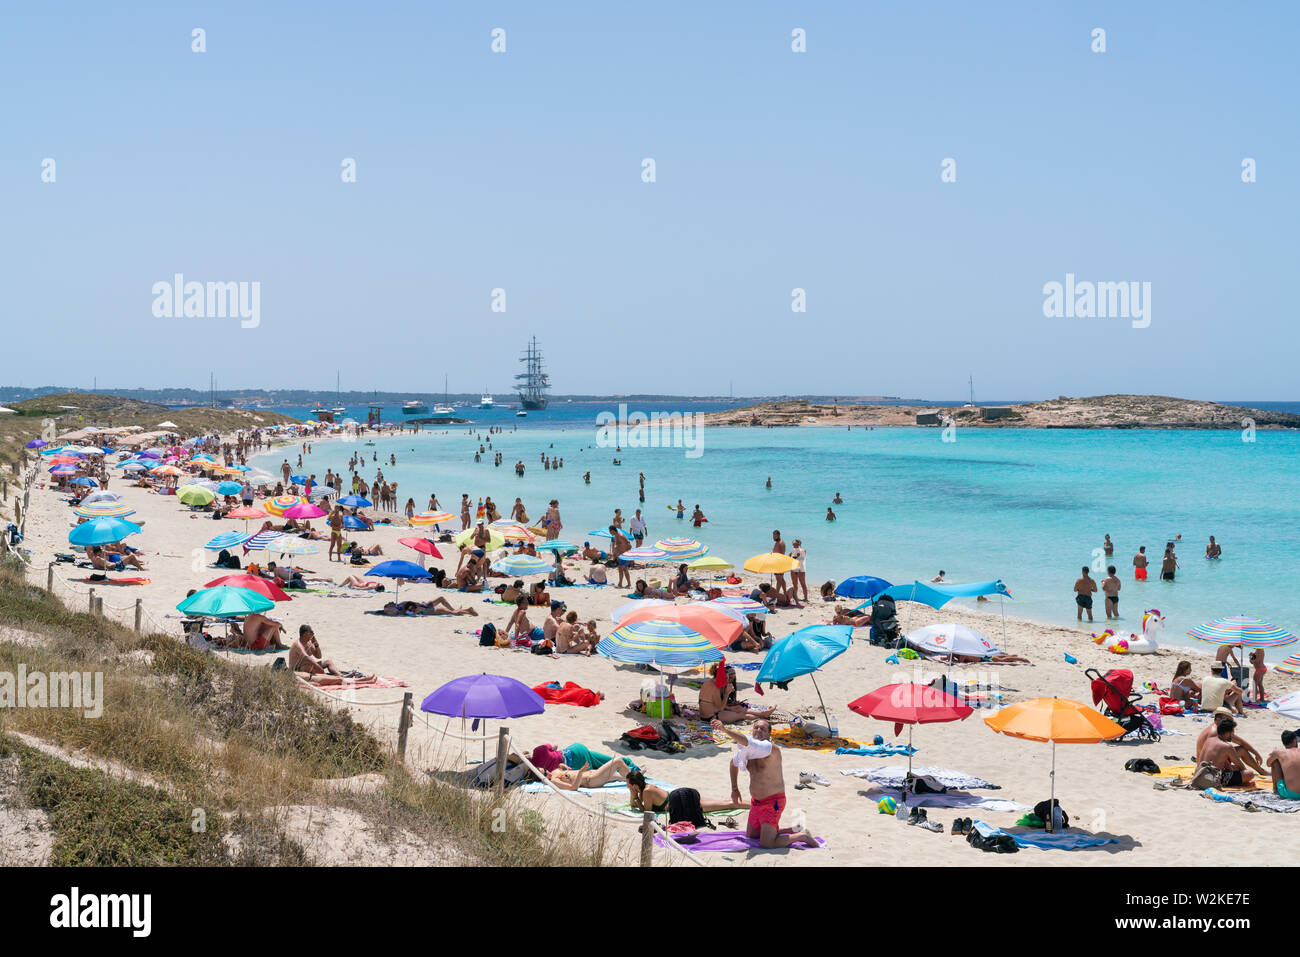 22th June 2019 - Formentera, Spain. People sunbathing on the Playa de Ses Illetes, Balearic Island of Formentera. - Stock Image